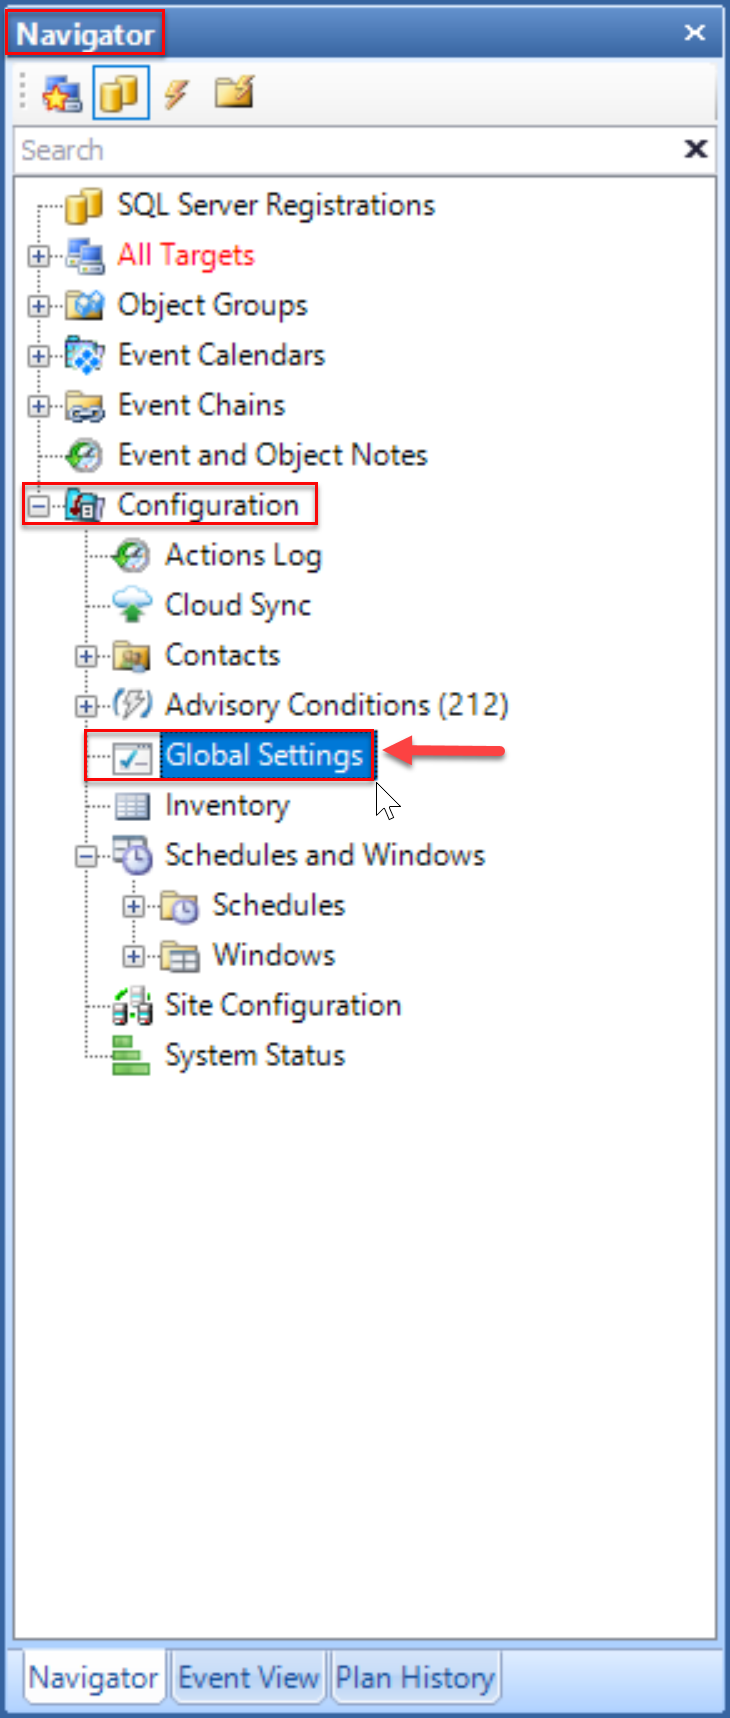 SentryOne select Global Settings in the Navigator